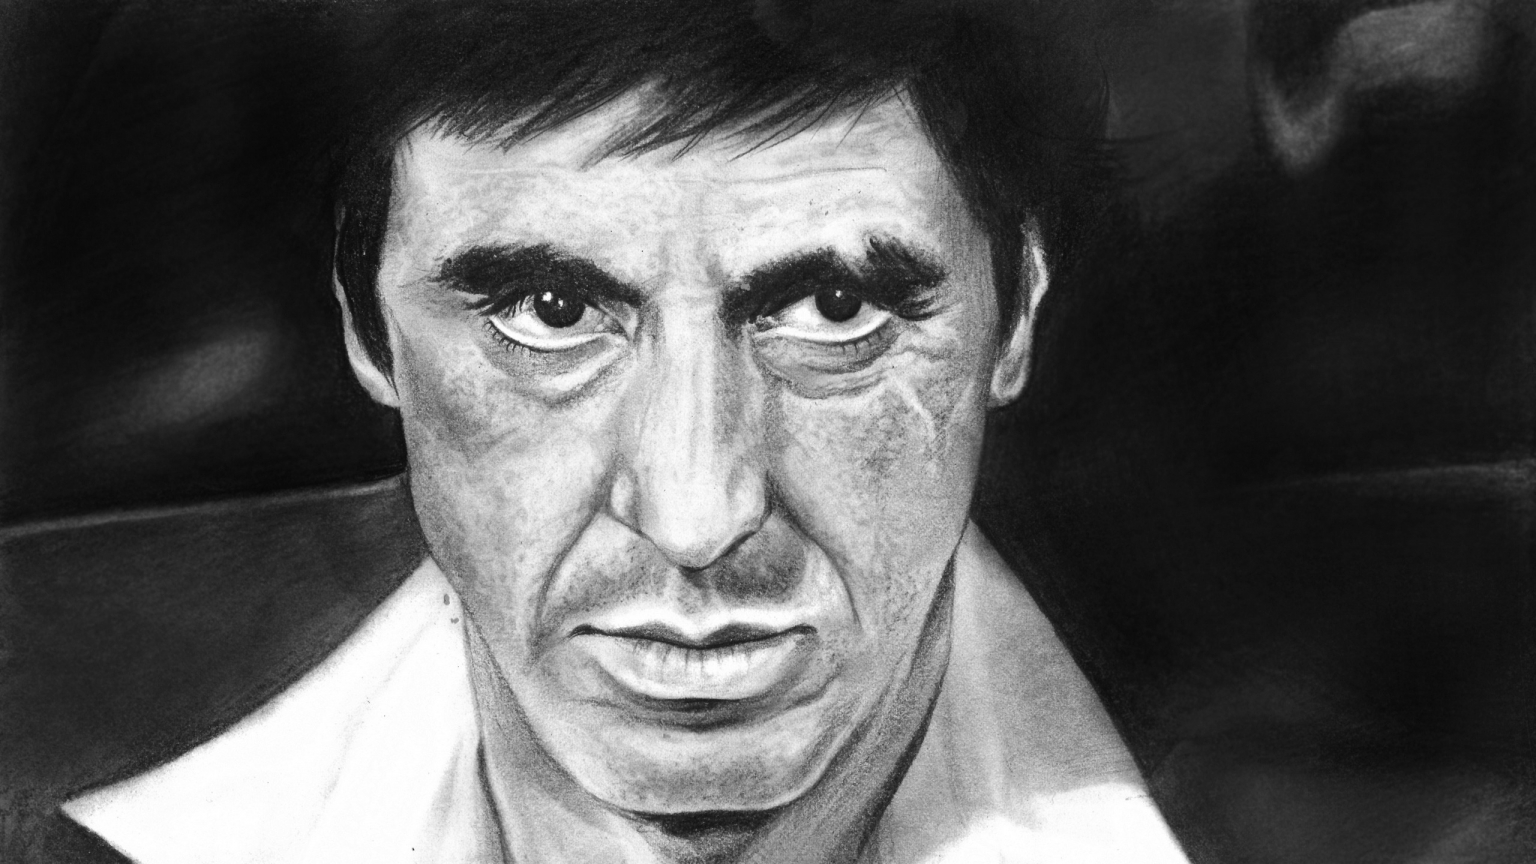 Al Pacino Scarface Fan Art for 1536 x 864 HDTV resolution